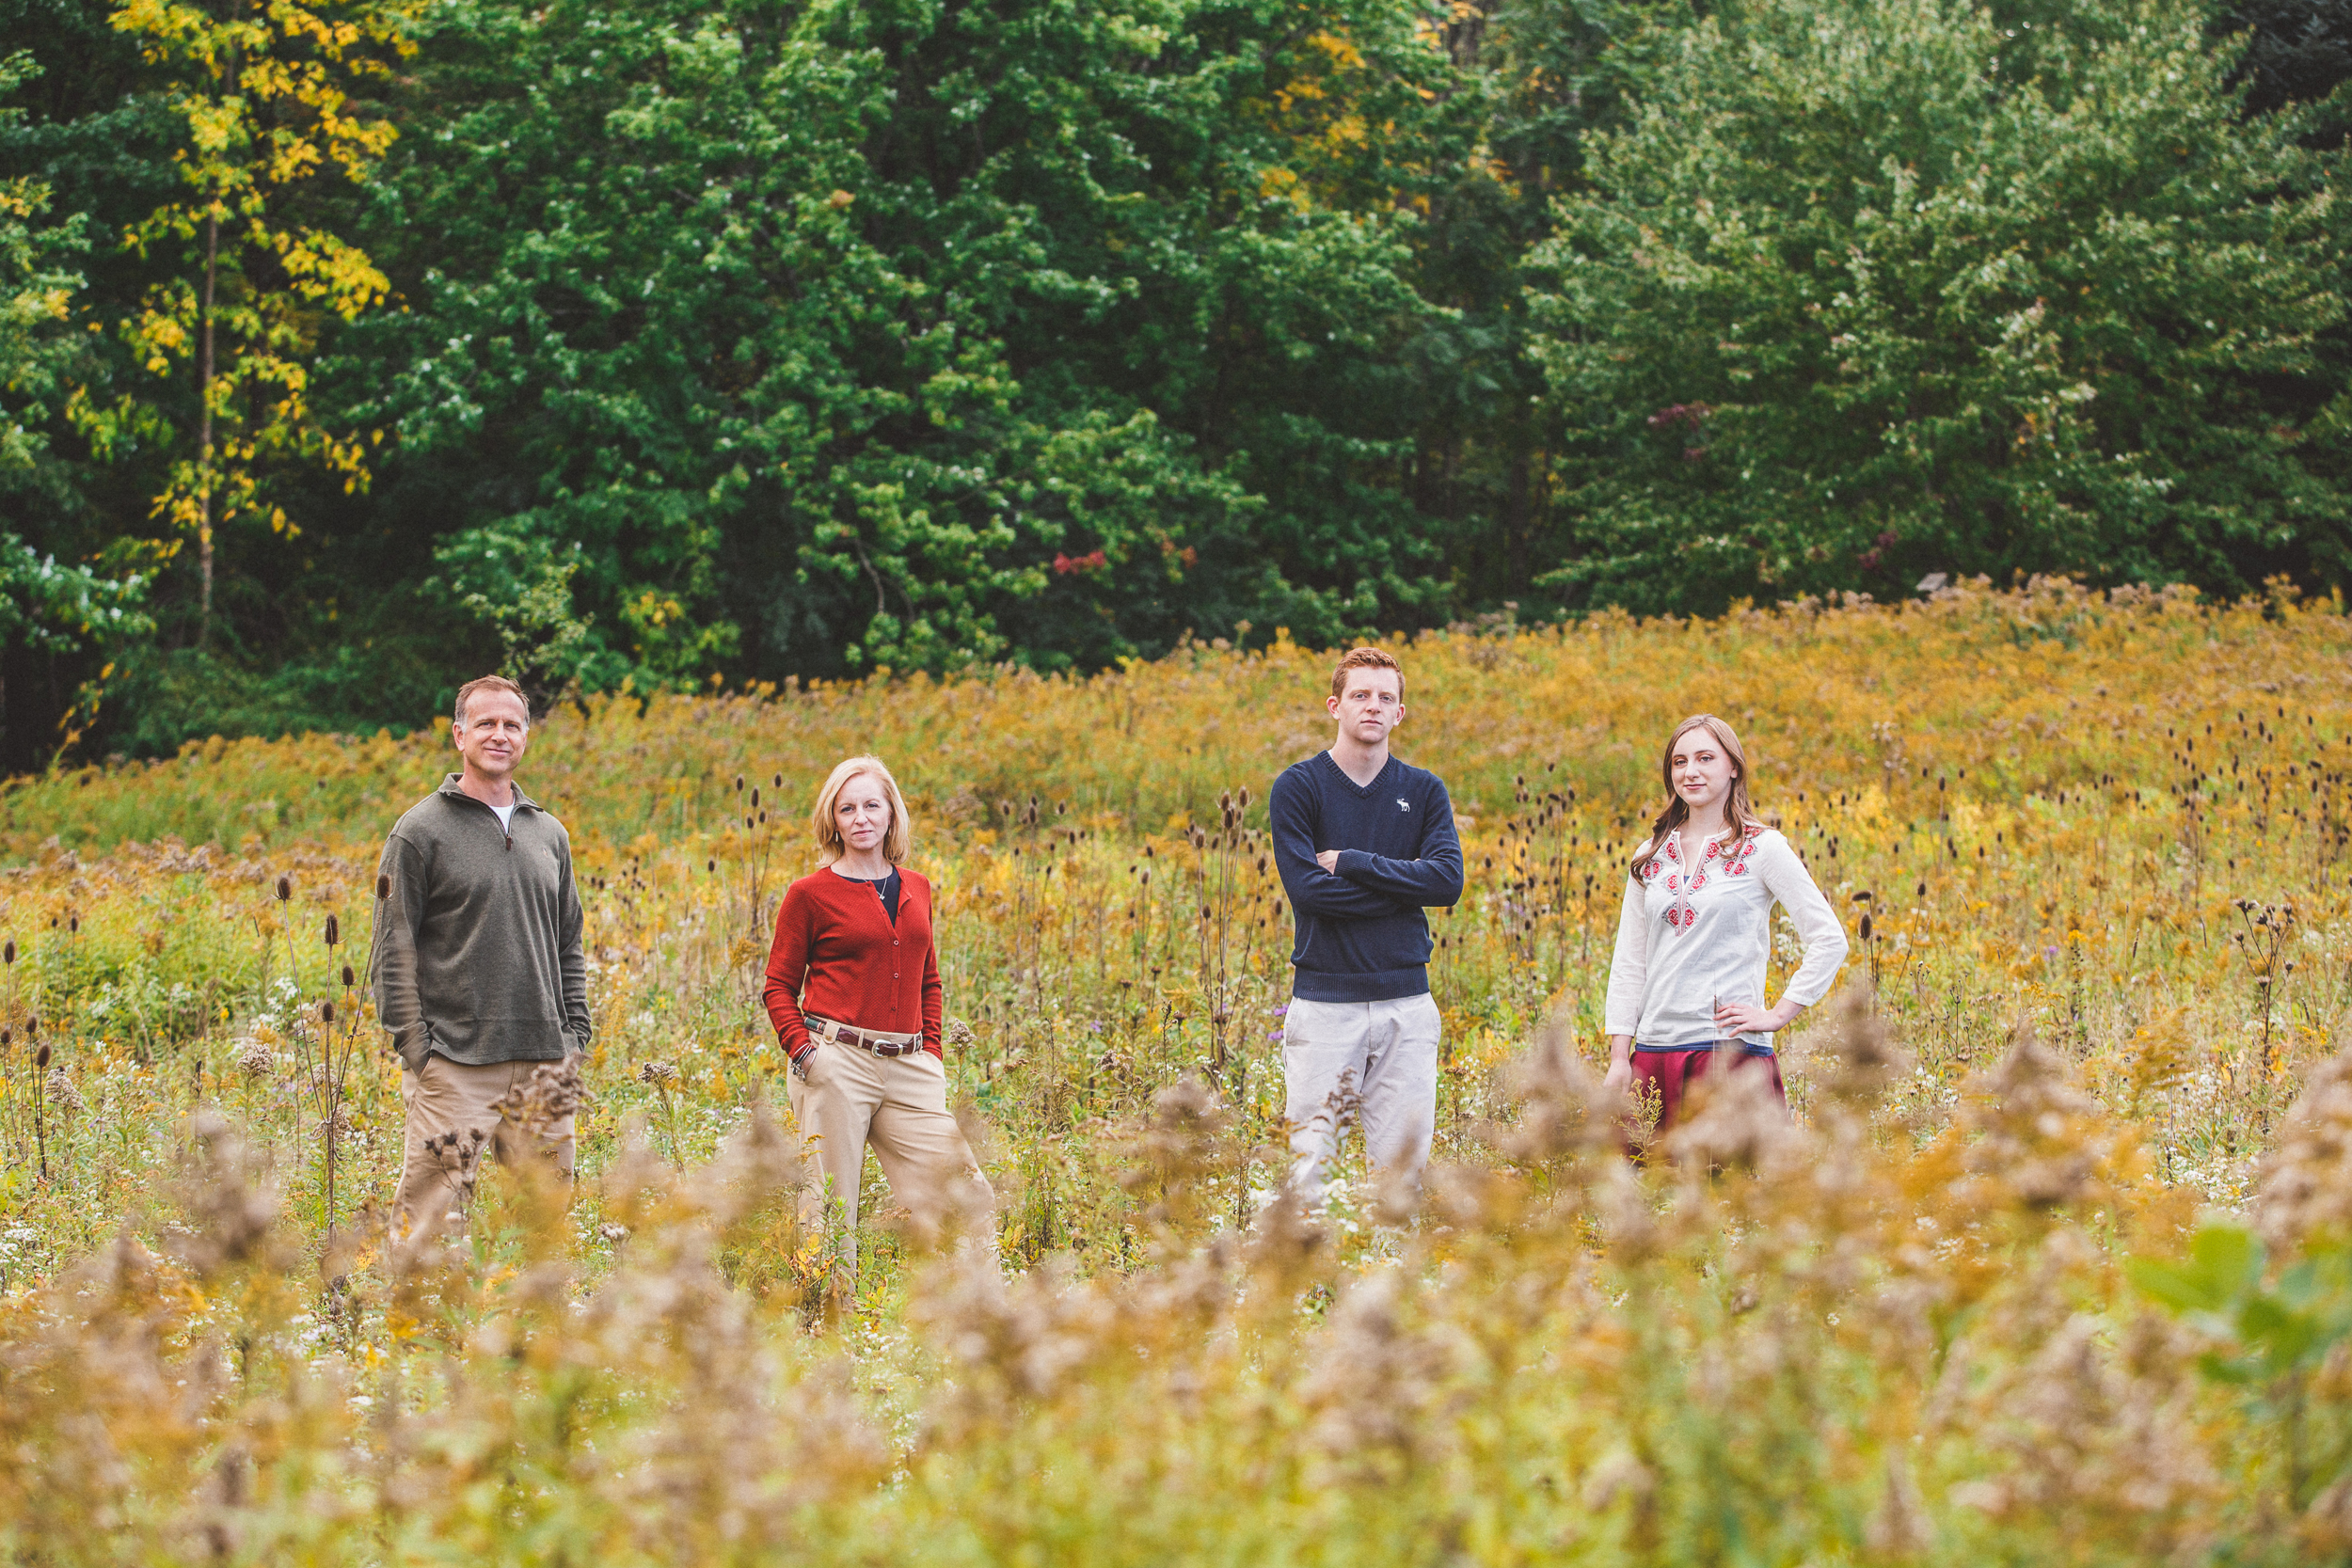 Rochester_NY_Lifestyle_Family_Photographer-12.jpg